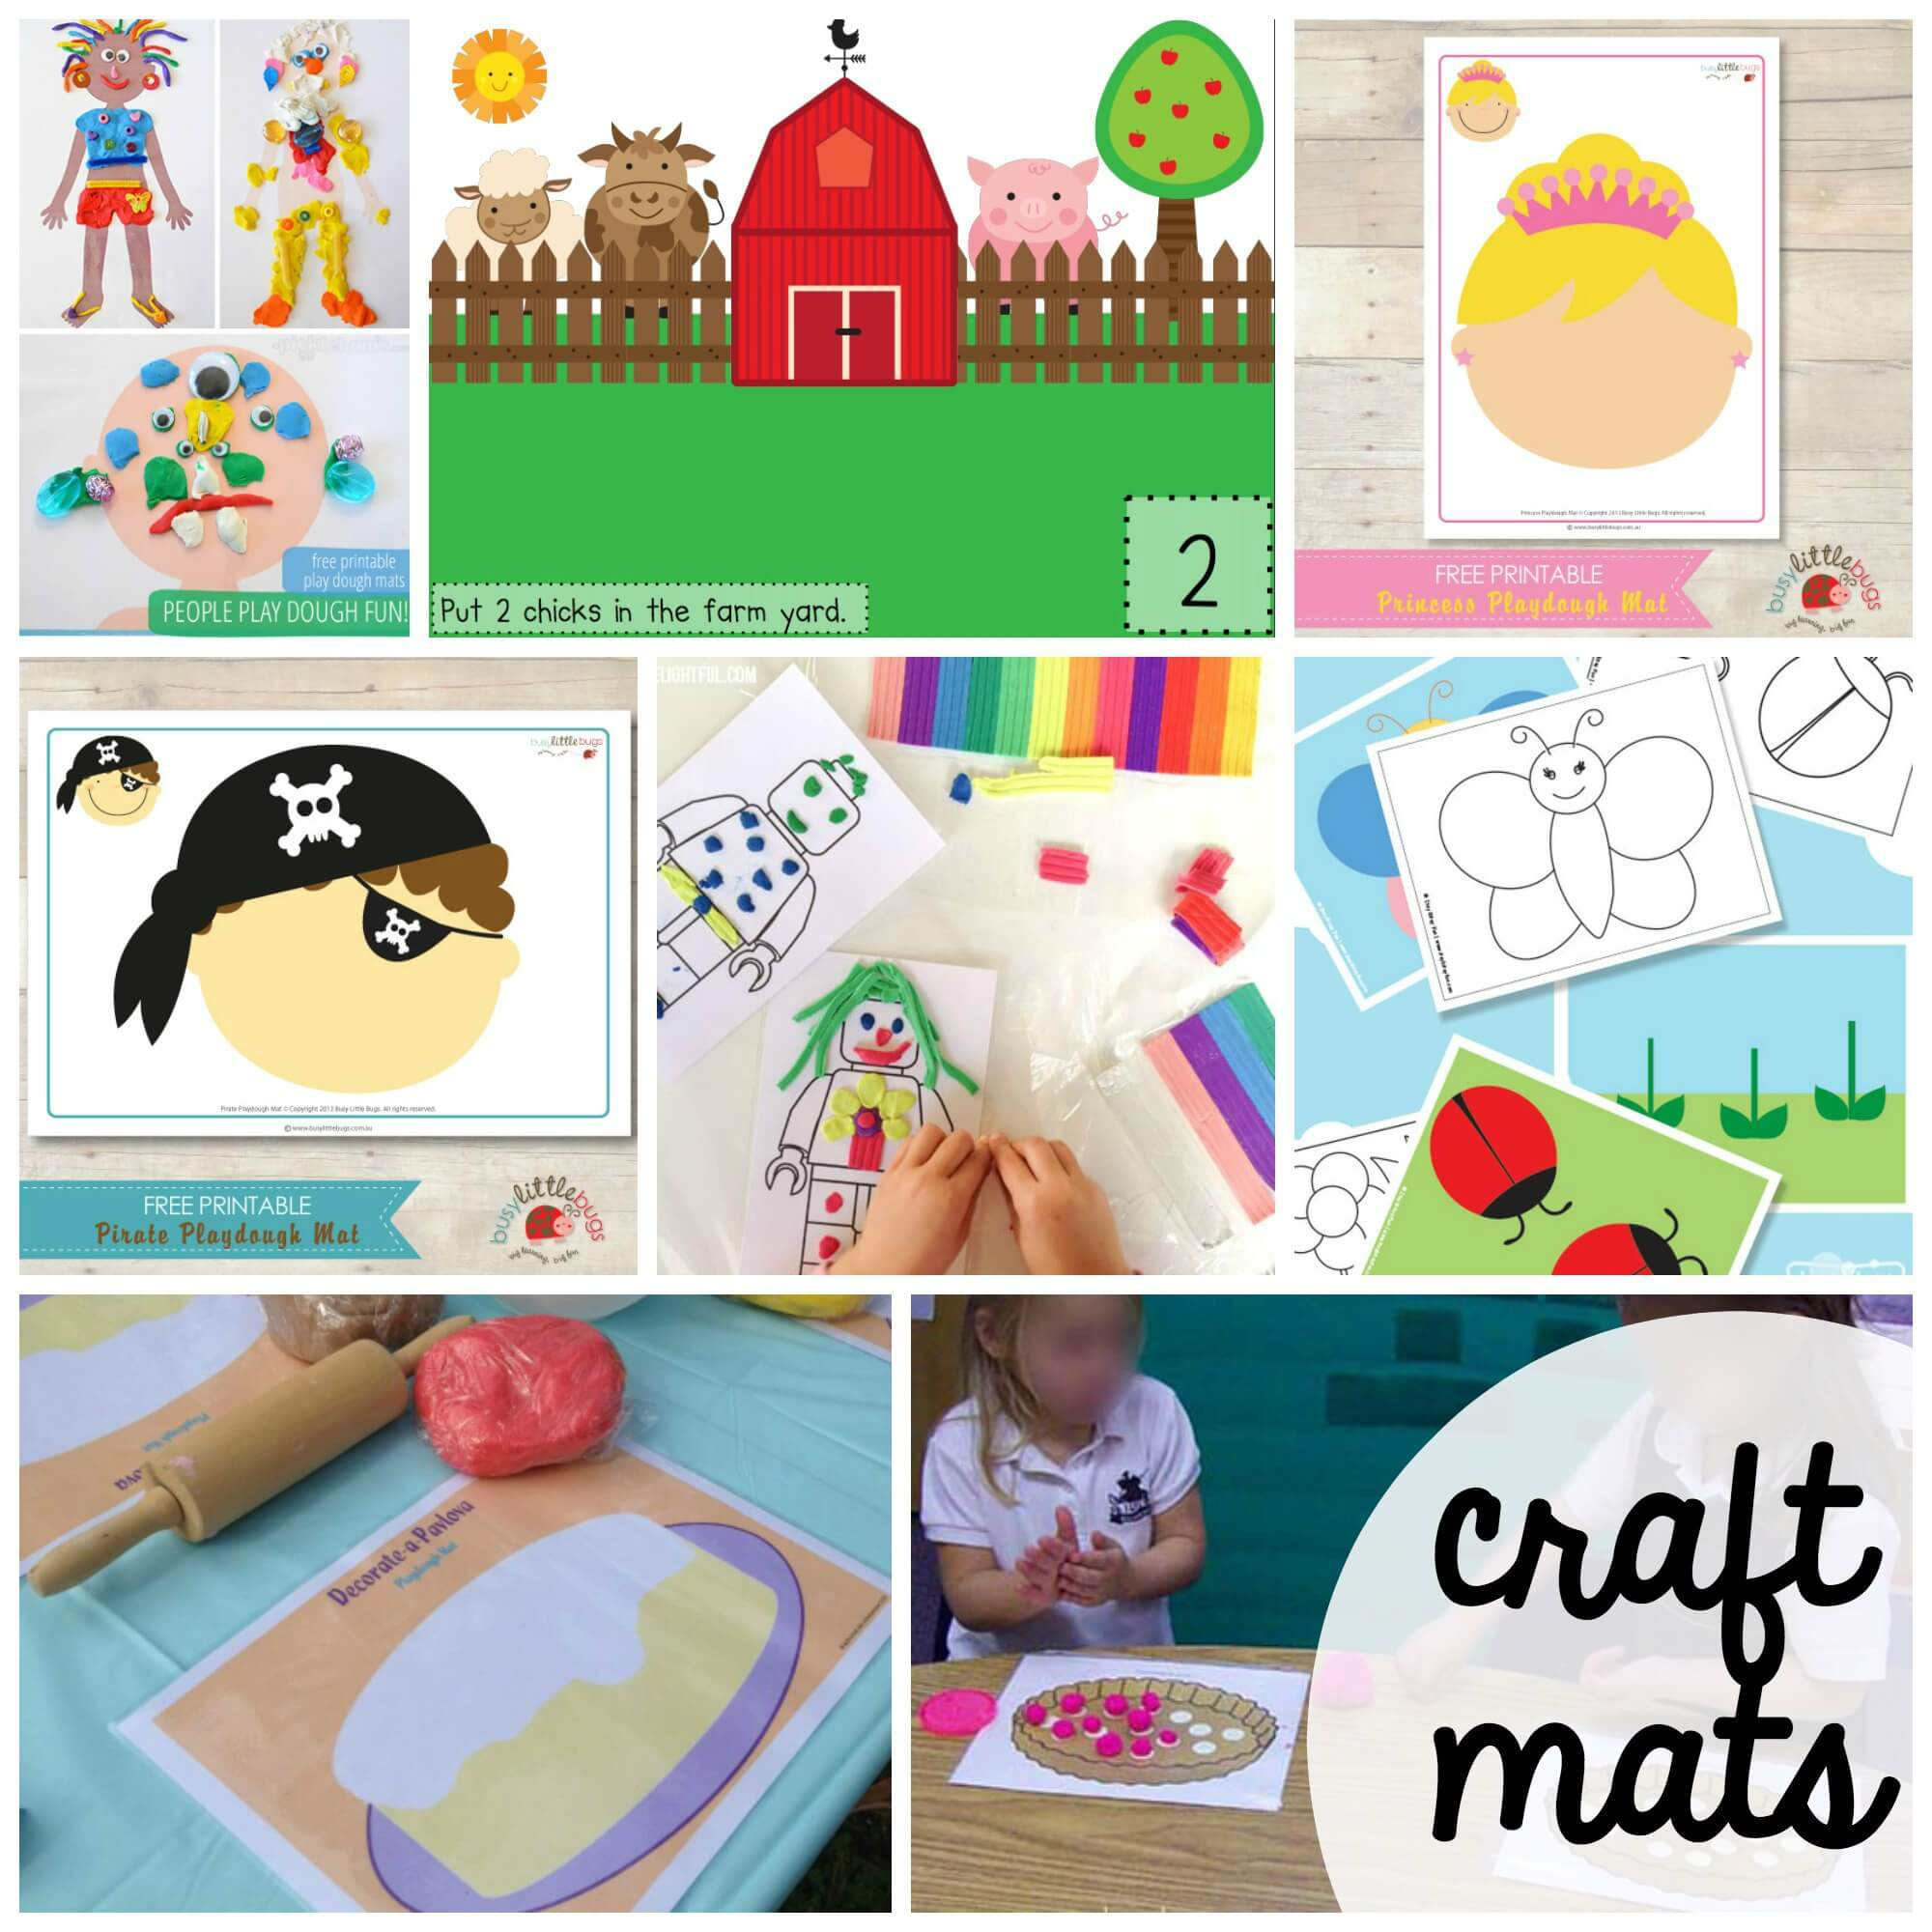 100 Free Playdough Mats - Playdough To Plato - Free Printable Playdough Mats